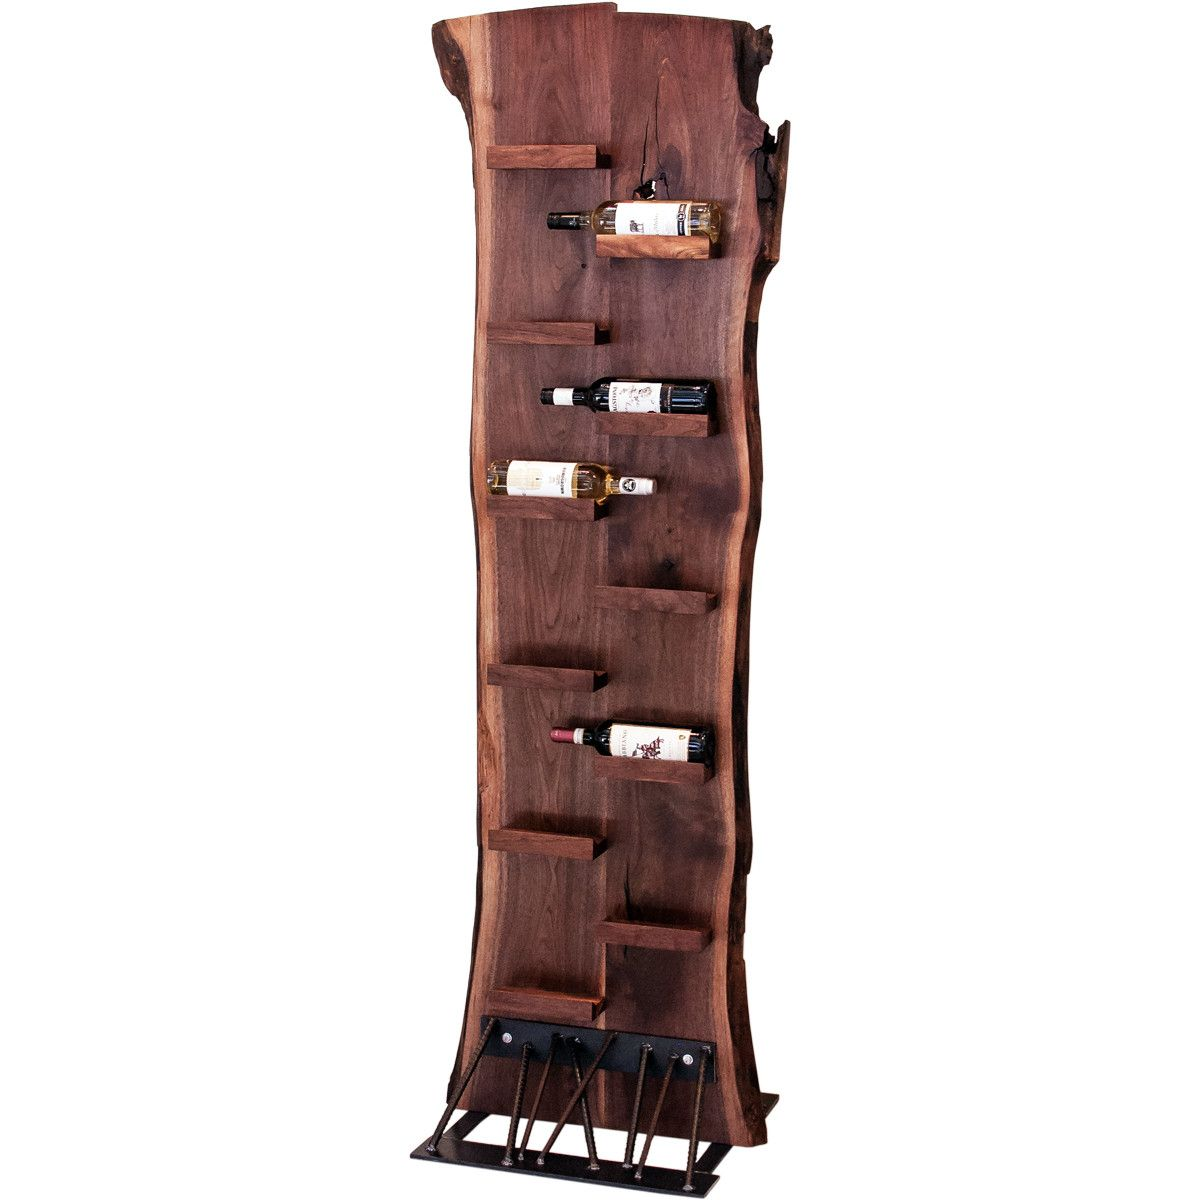 Unique Wine Racks Rustic Log Panel And Wine Handles On Unique Wall Mounted Wine